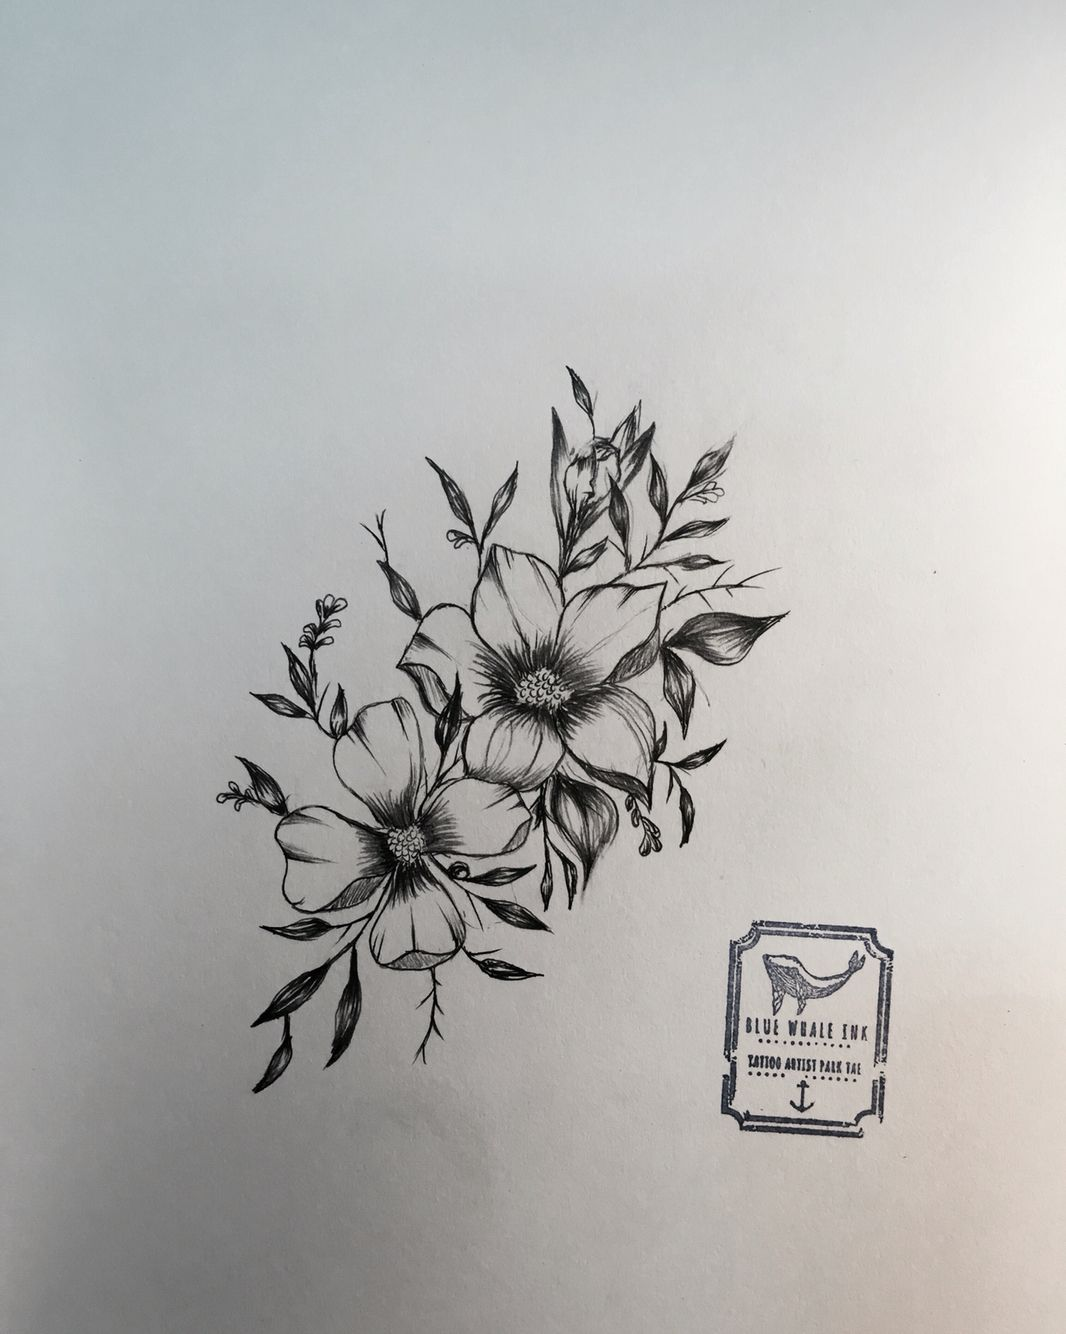 Flower Flower Tattoo Design From Blue Whale Ink Design by park tae Work In